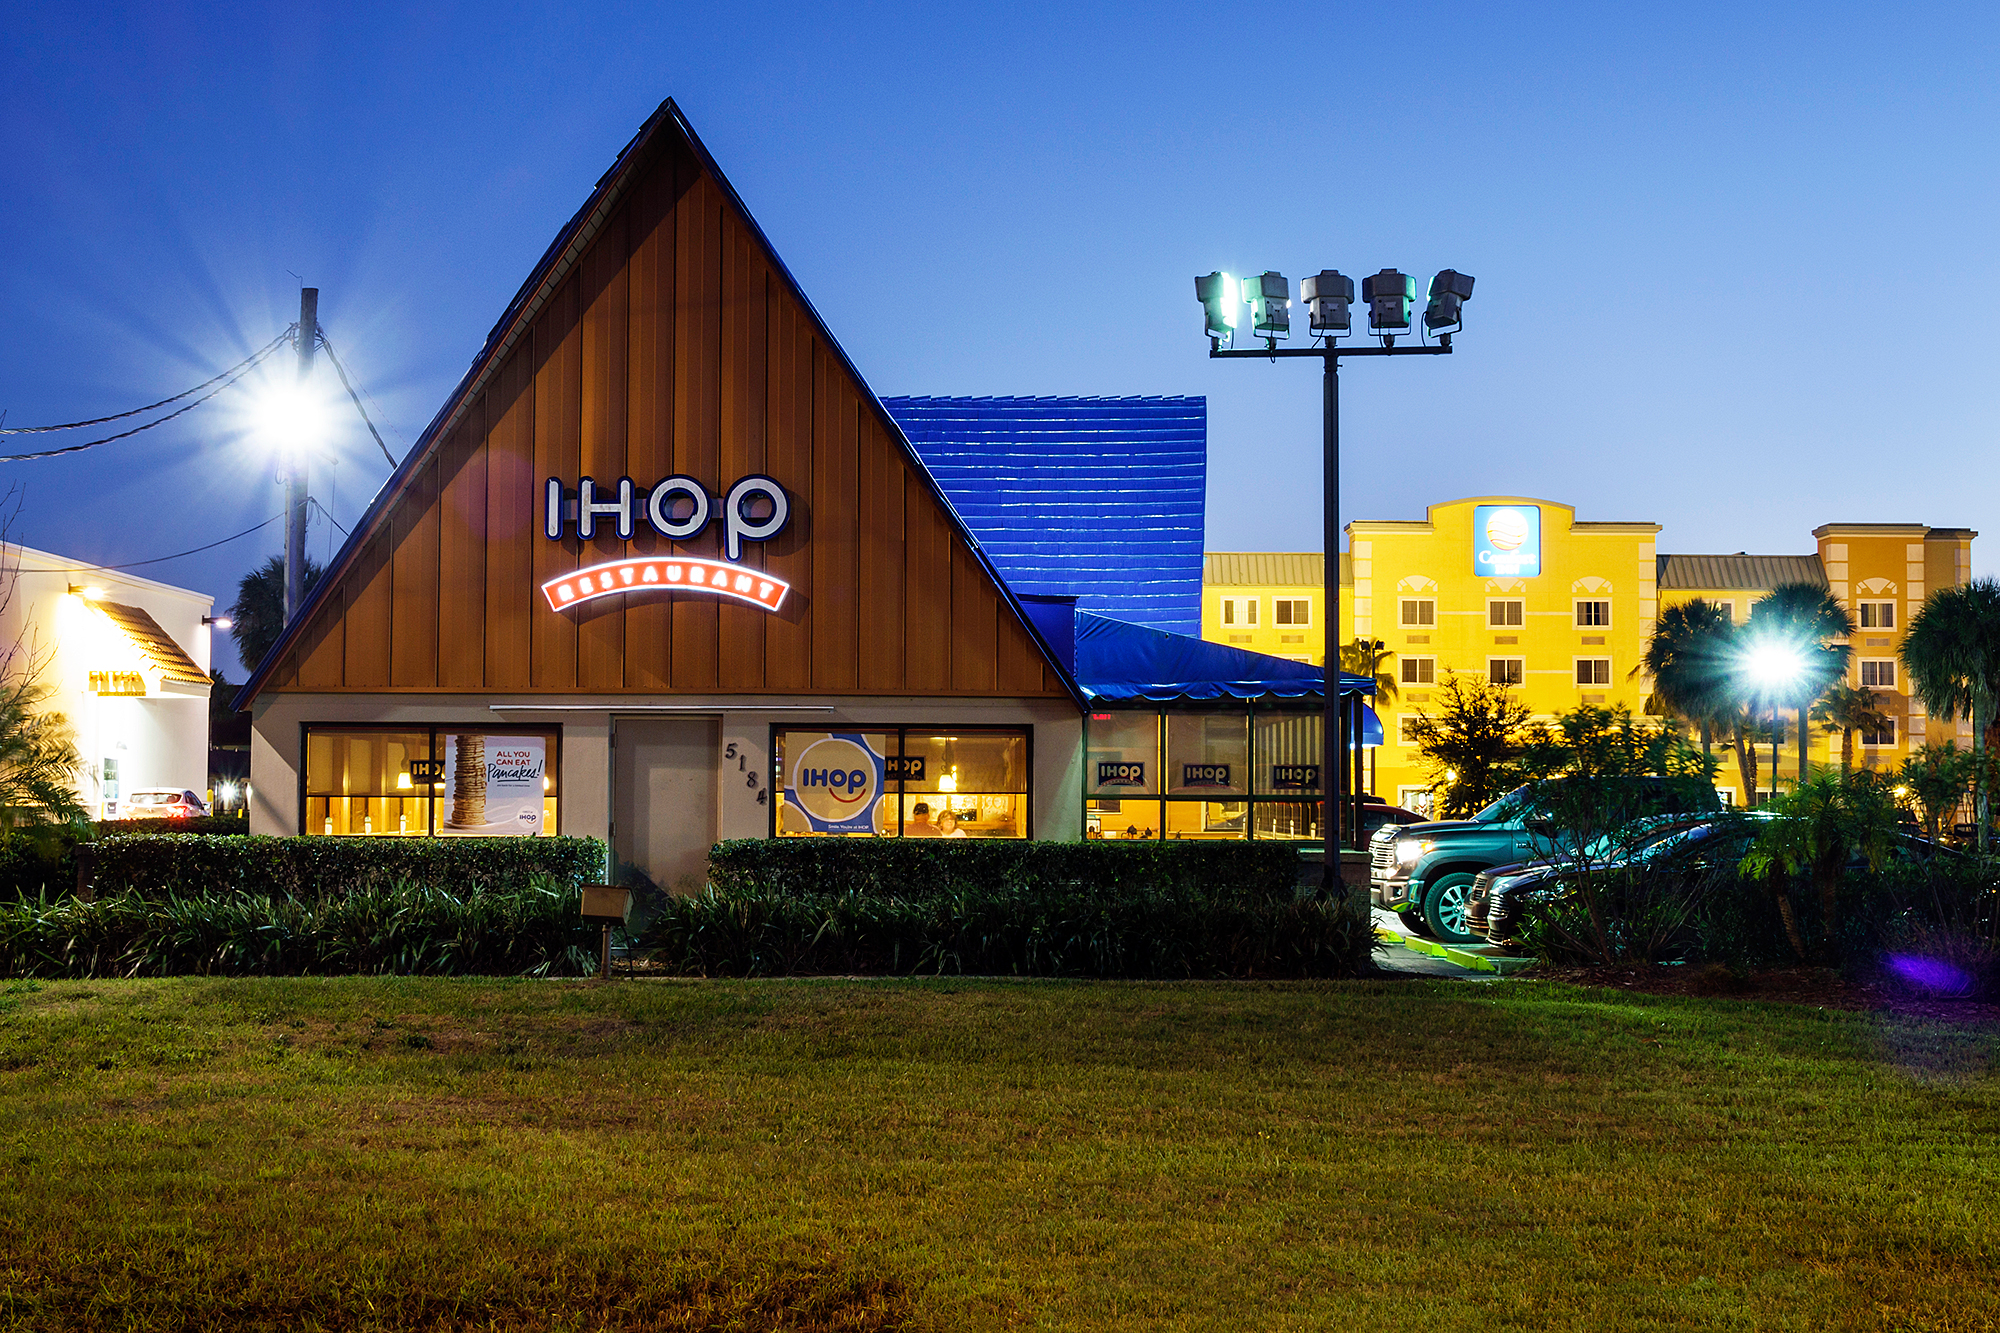 IHOP to IHOB name change 'dumbest' move ever, brand experts warn